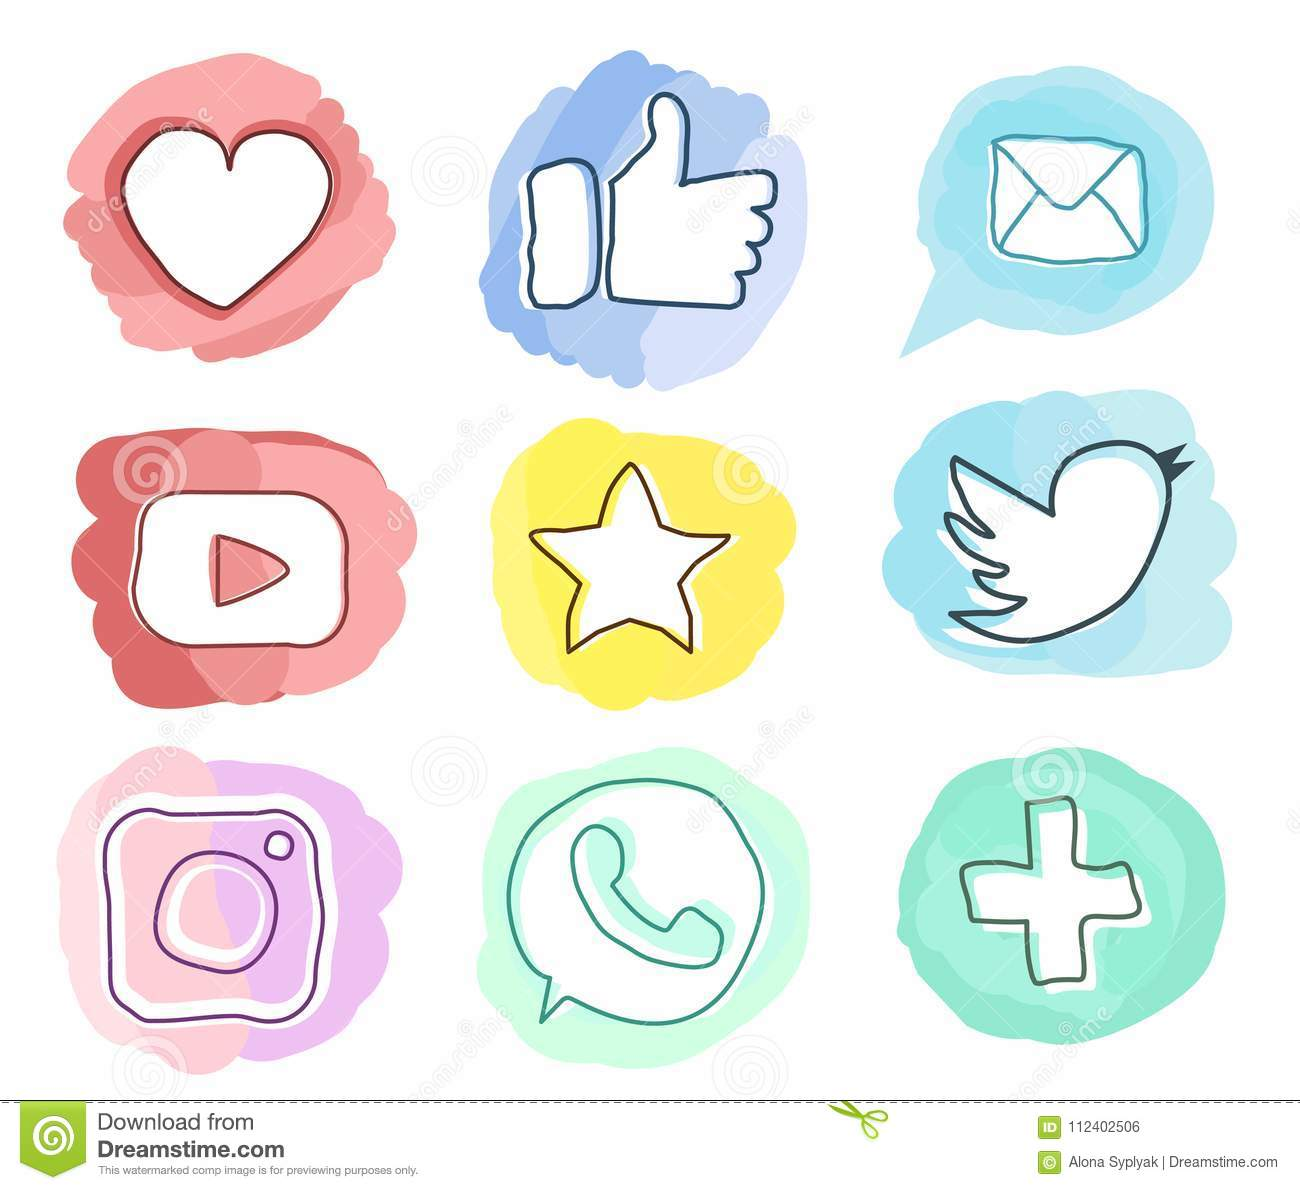 set of social media iconstrendy style watercolor doodle vector in pastel colors - Social Media Icons For Business Cards